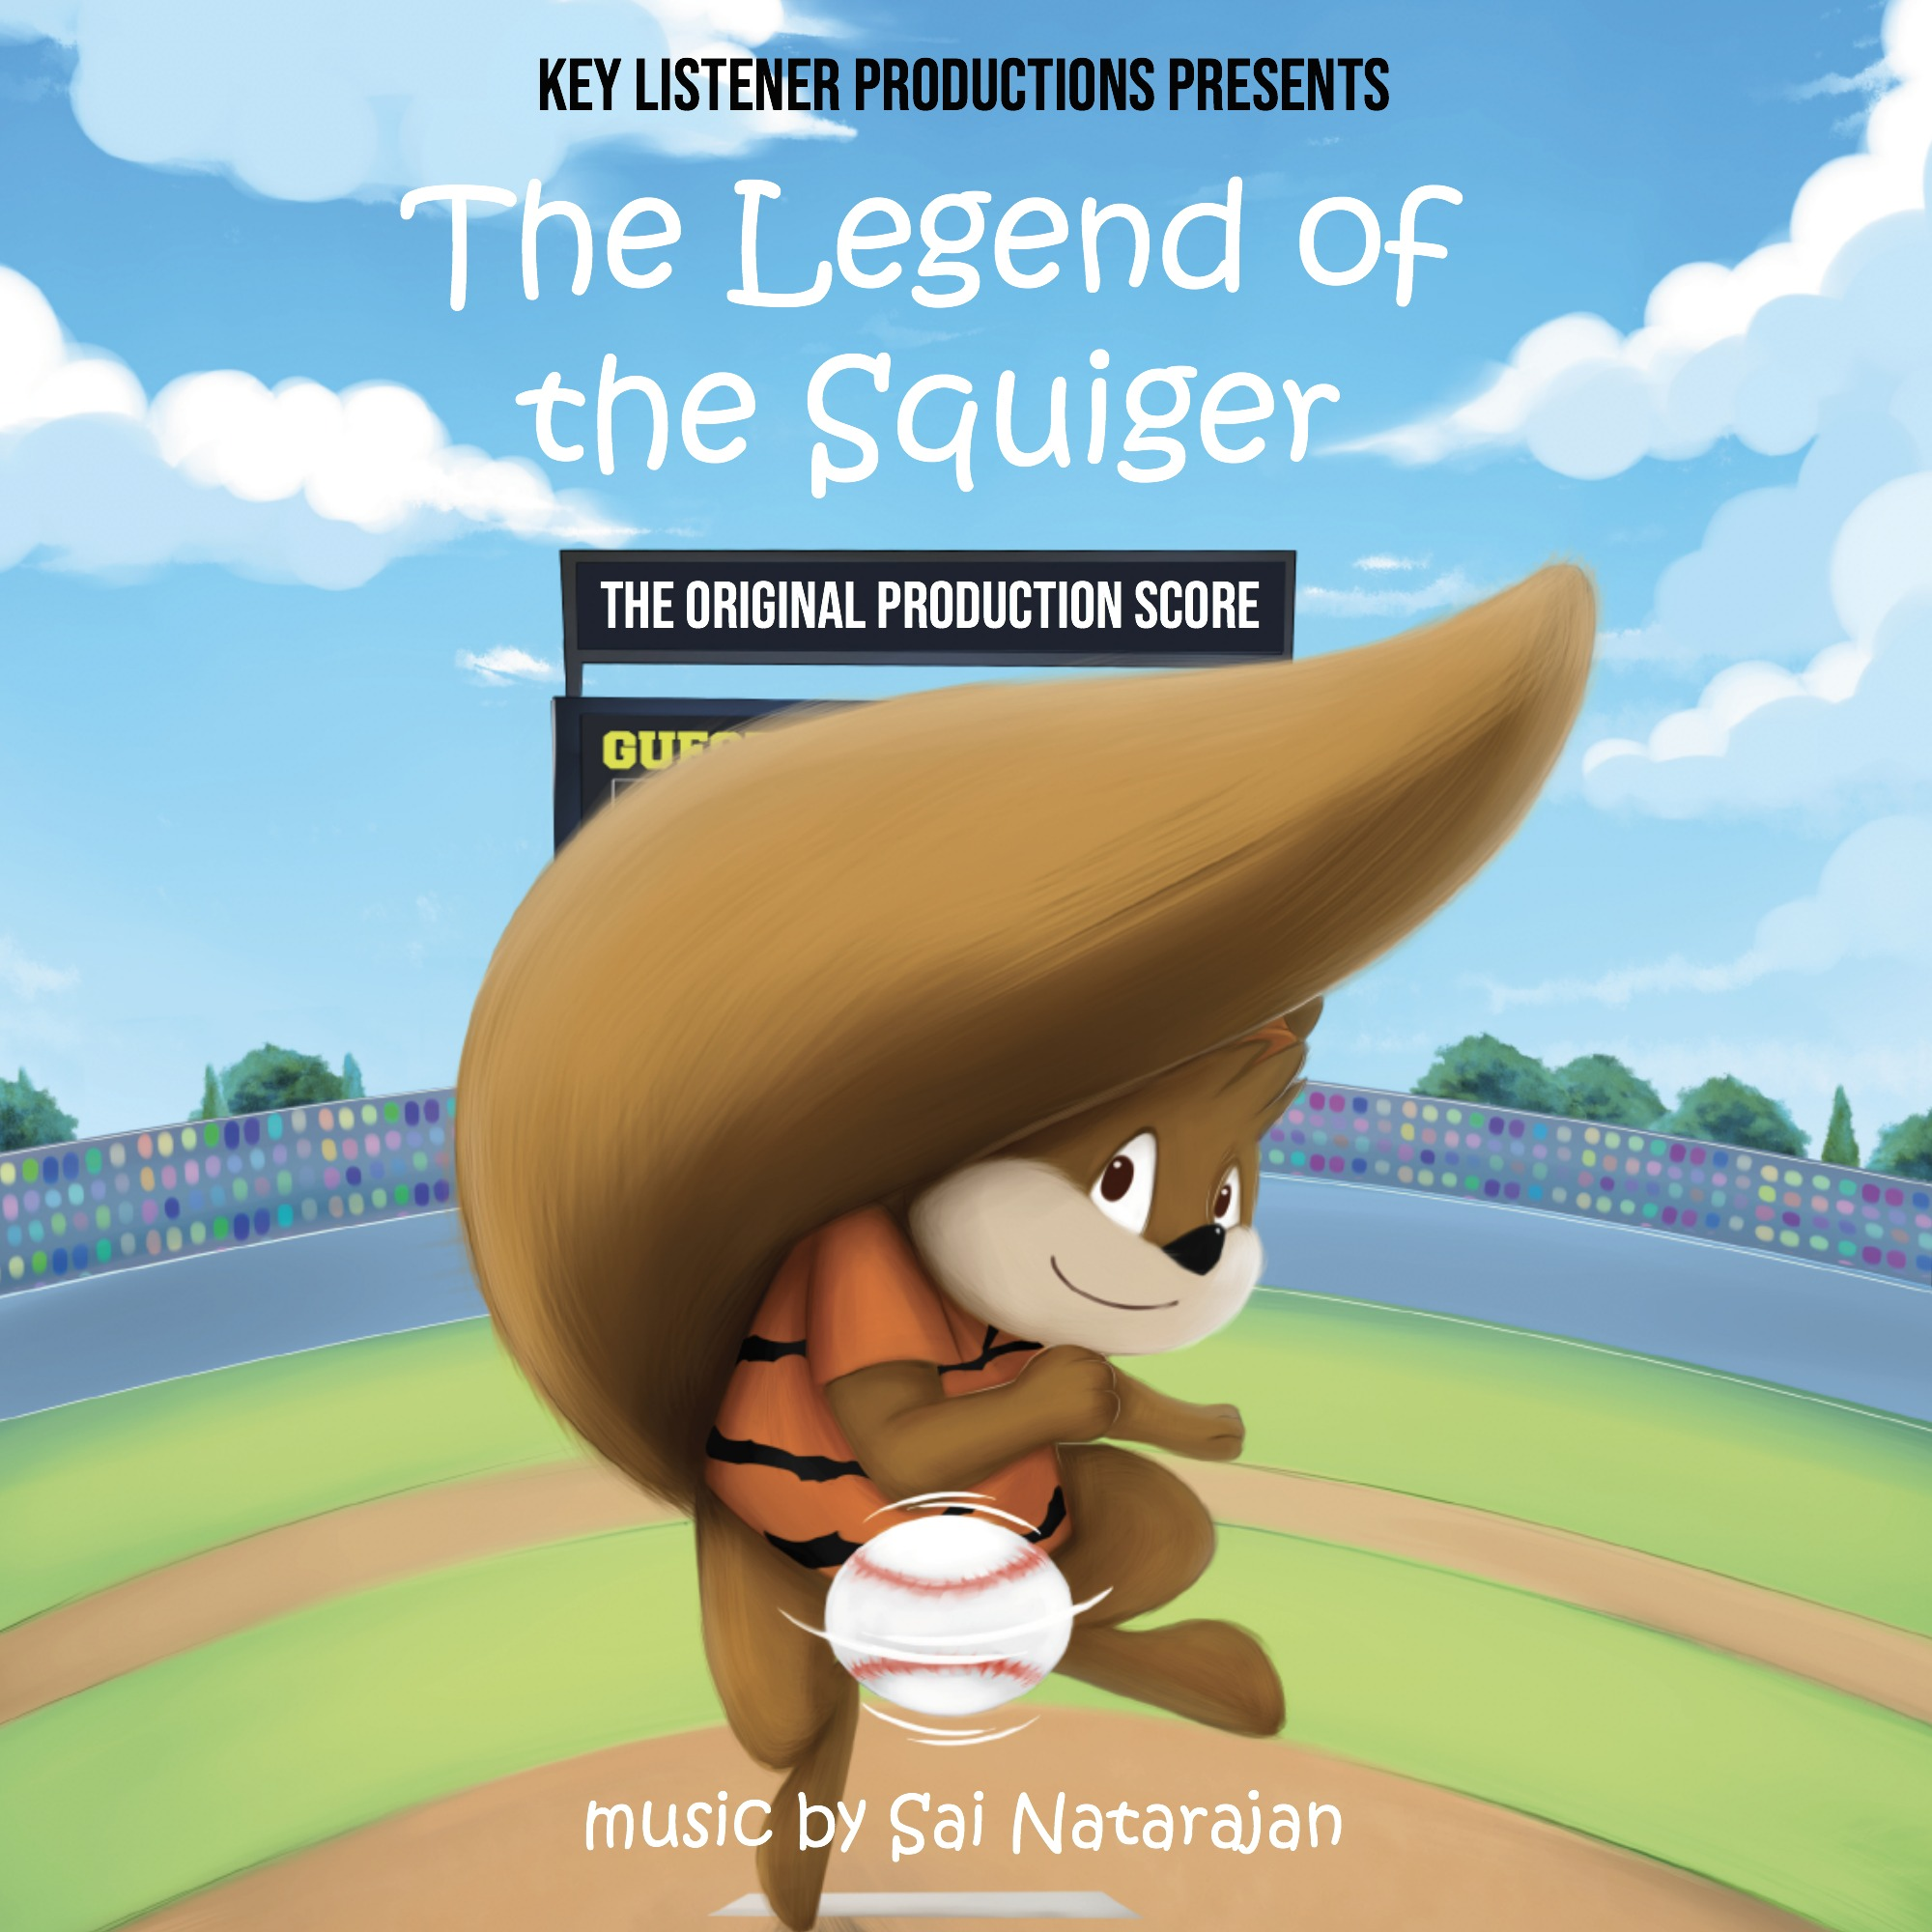 The Legend of the Squiger - Original Score Album Art